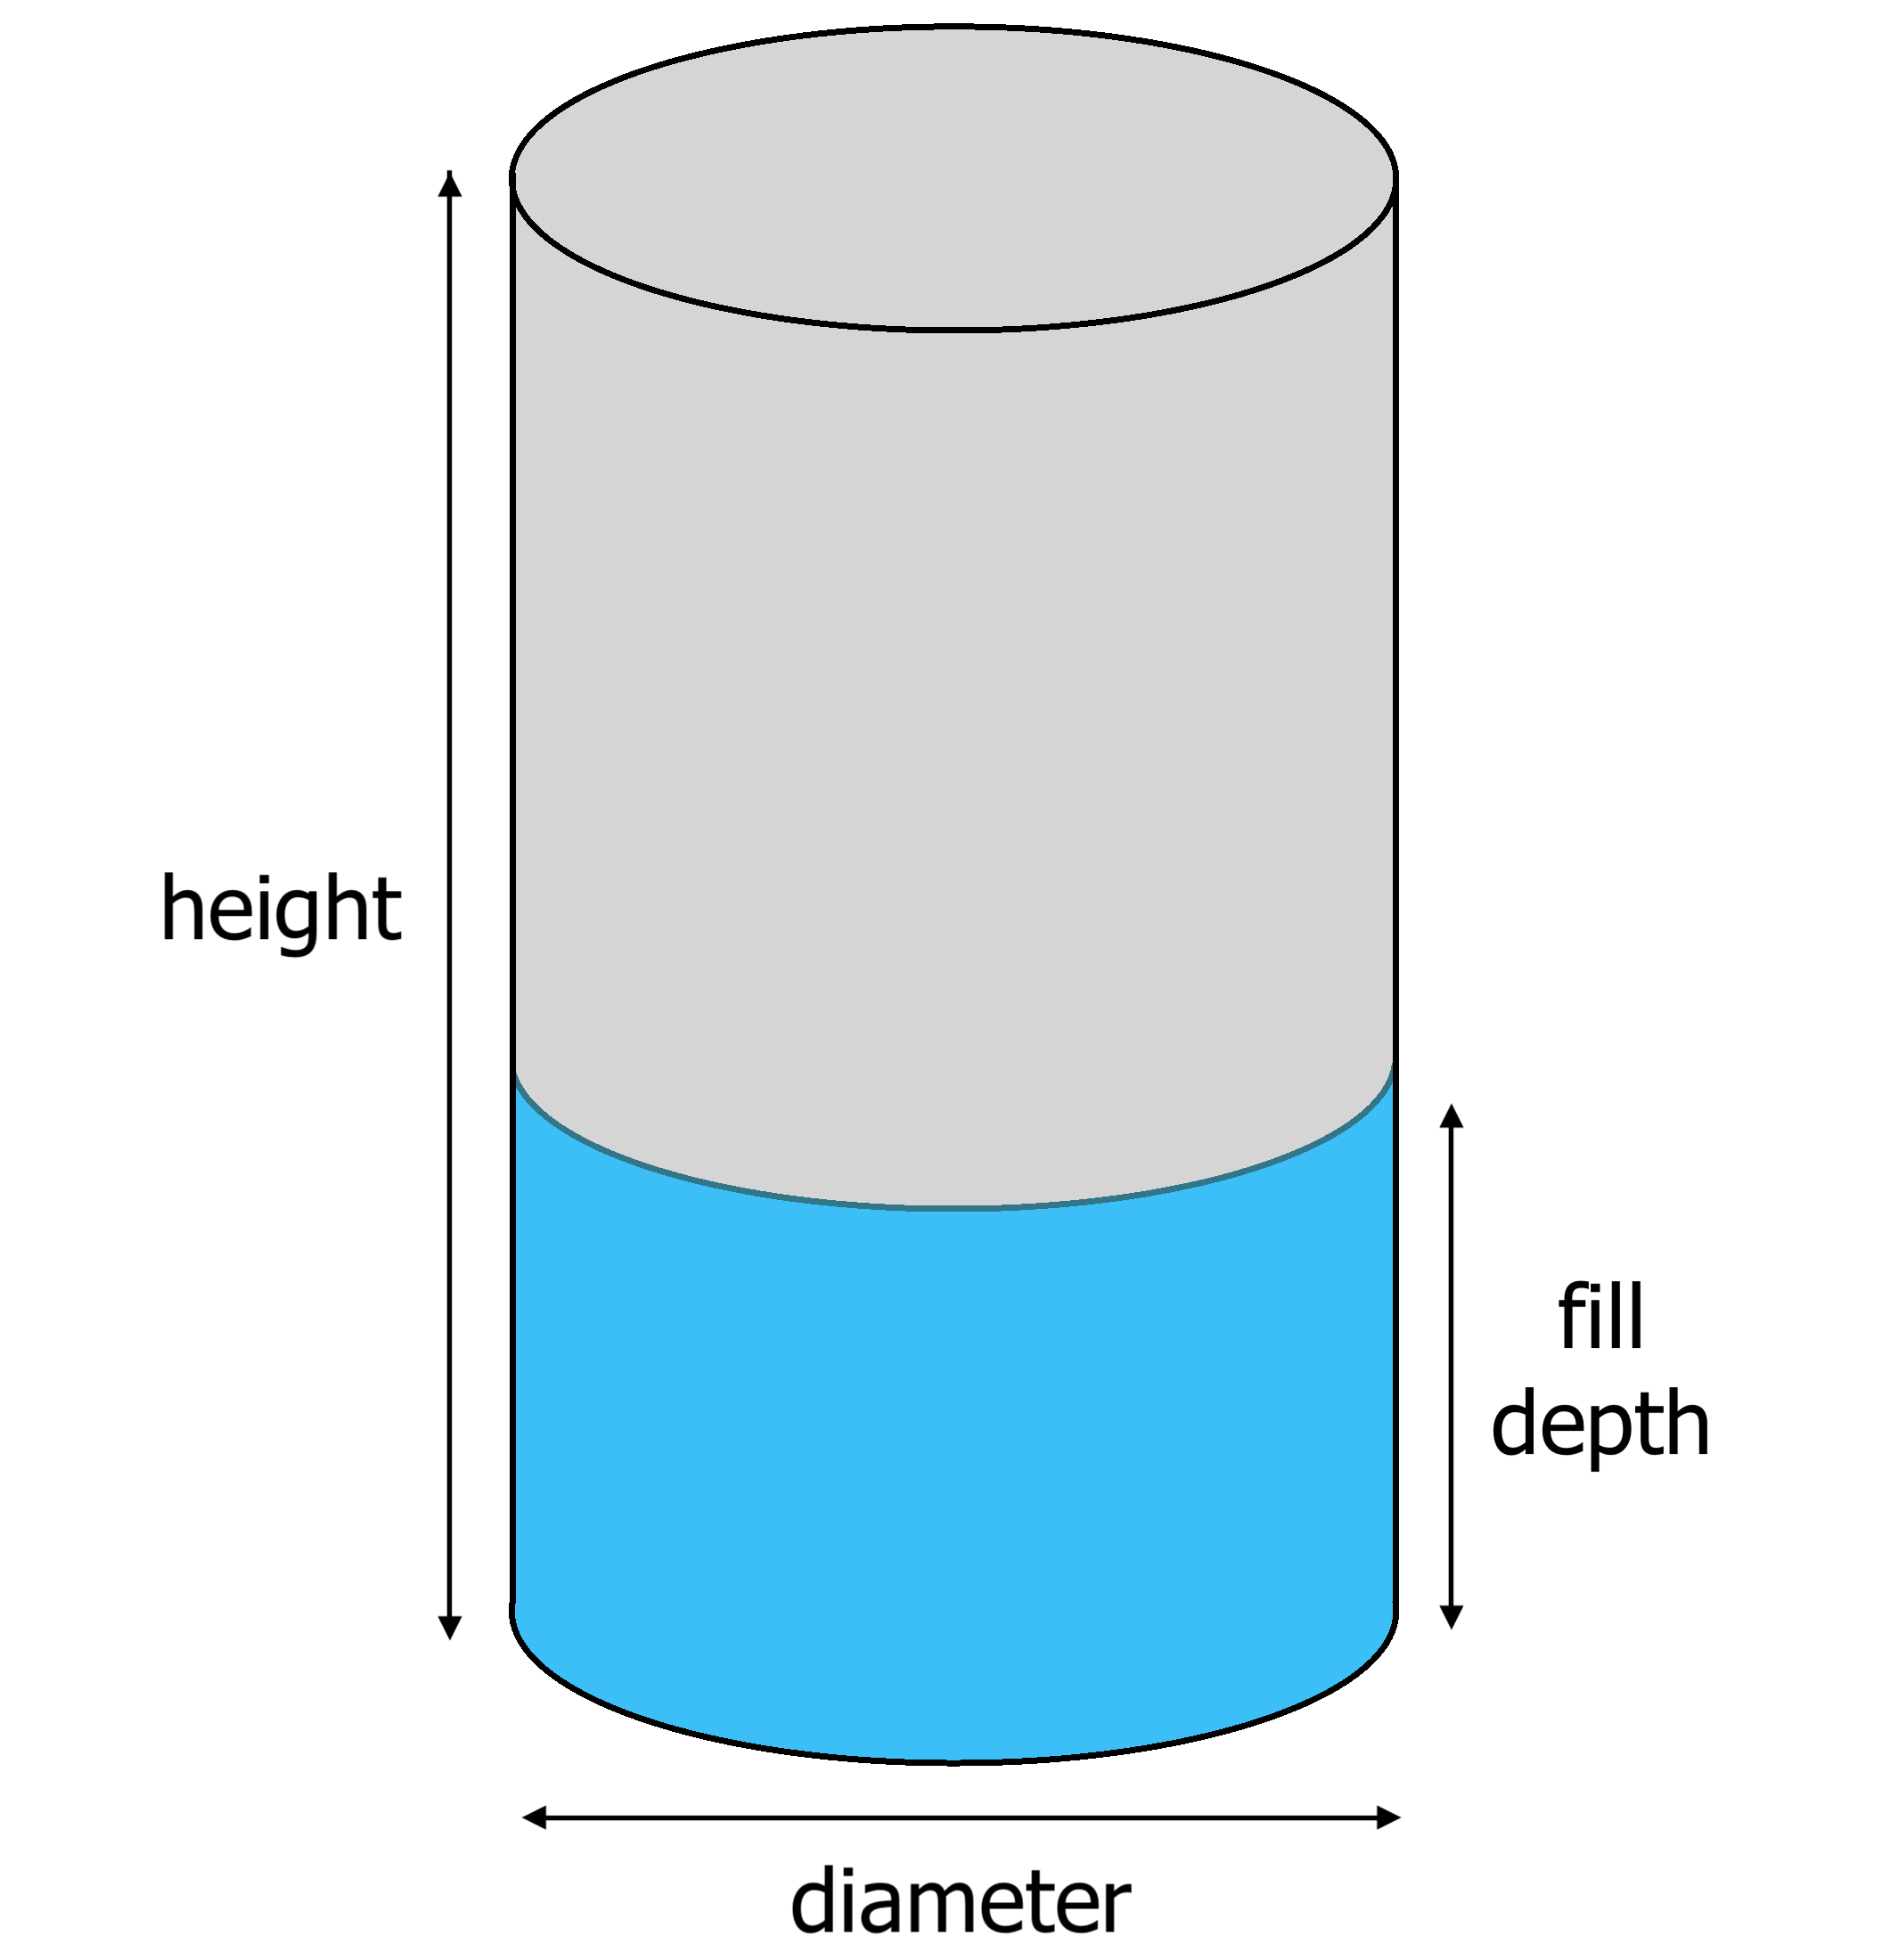 vertical cylinder tank diagram showing height, diameter, and fill depth dimensions